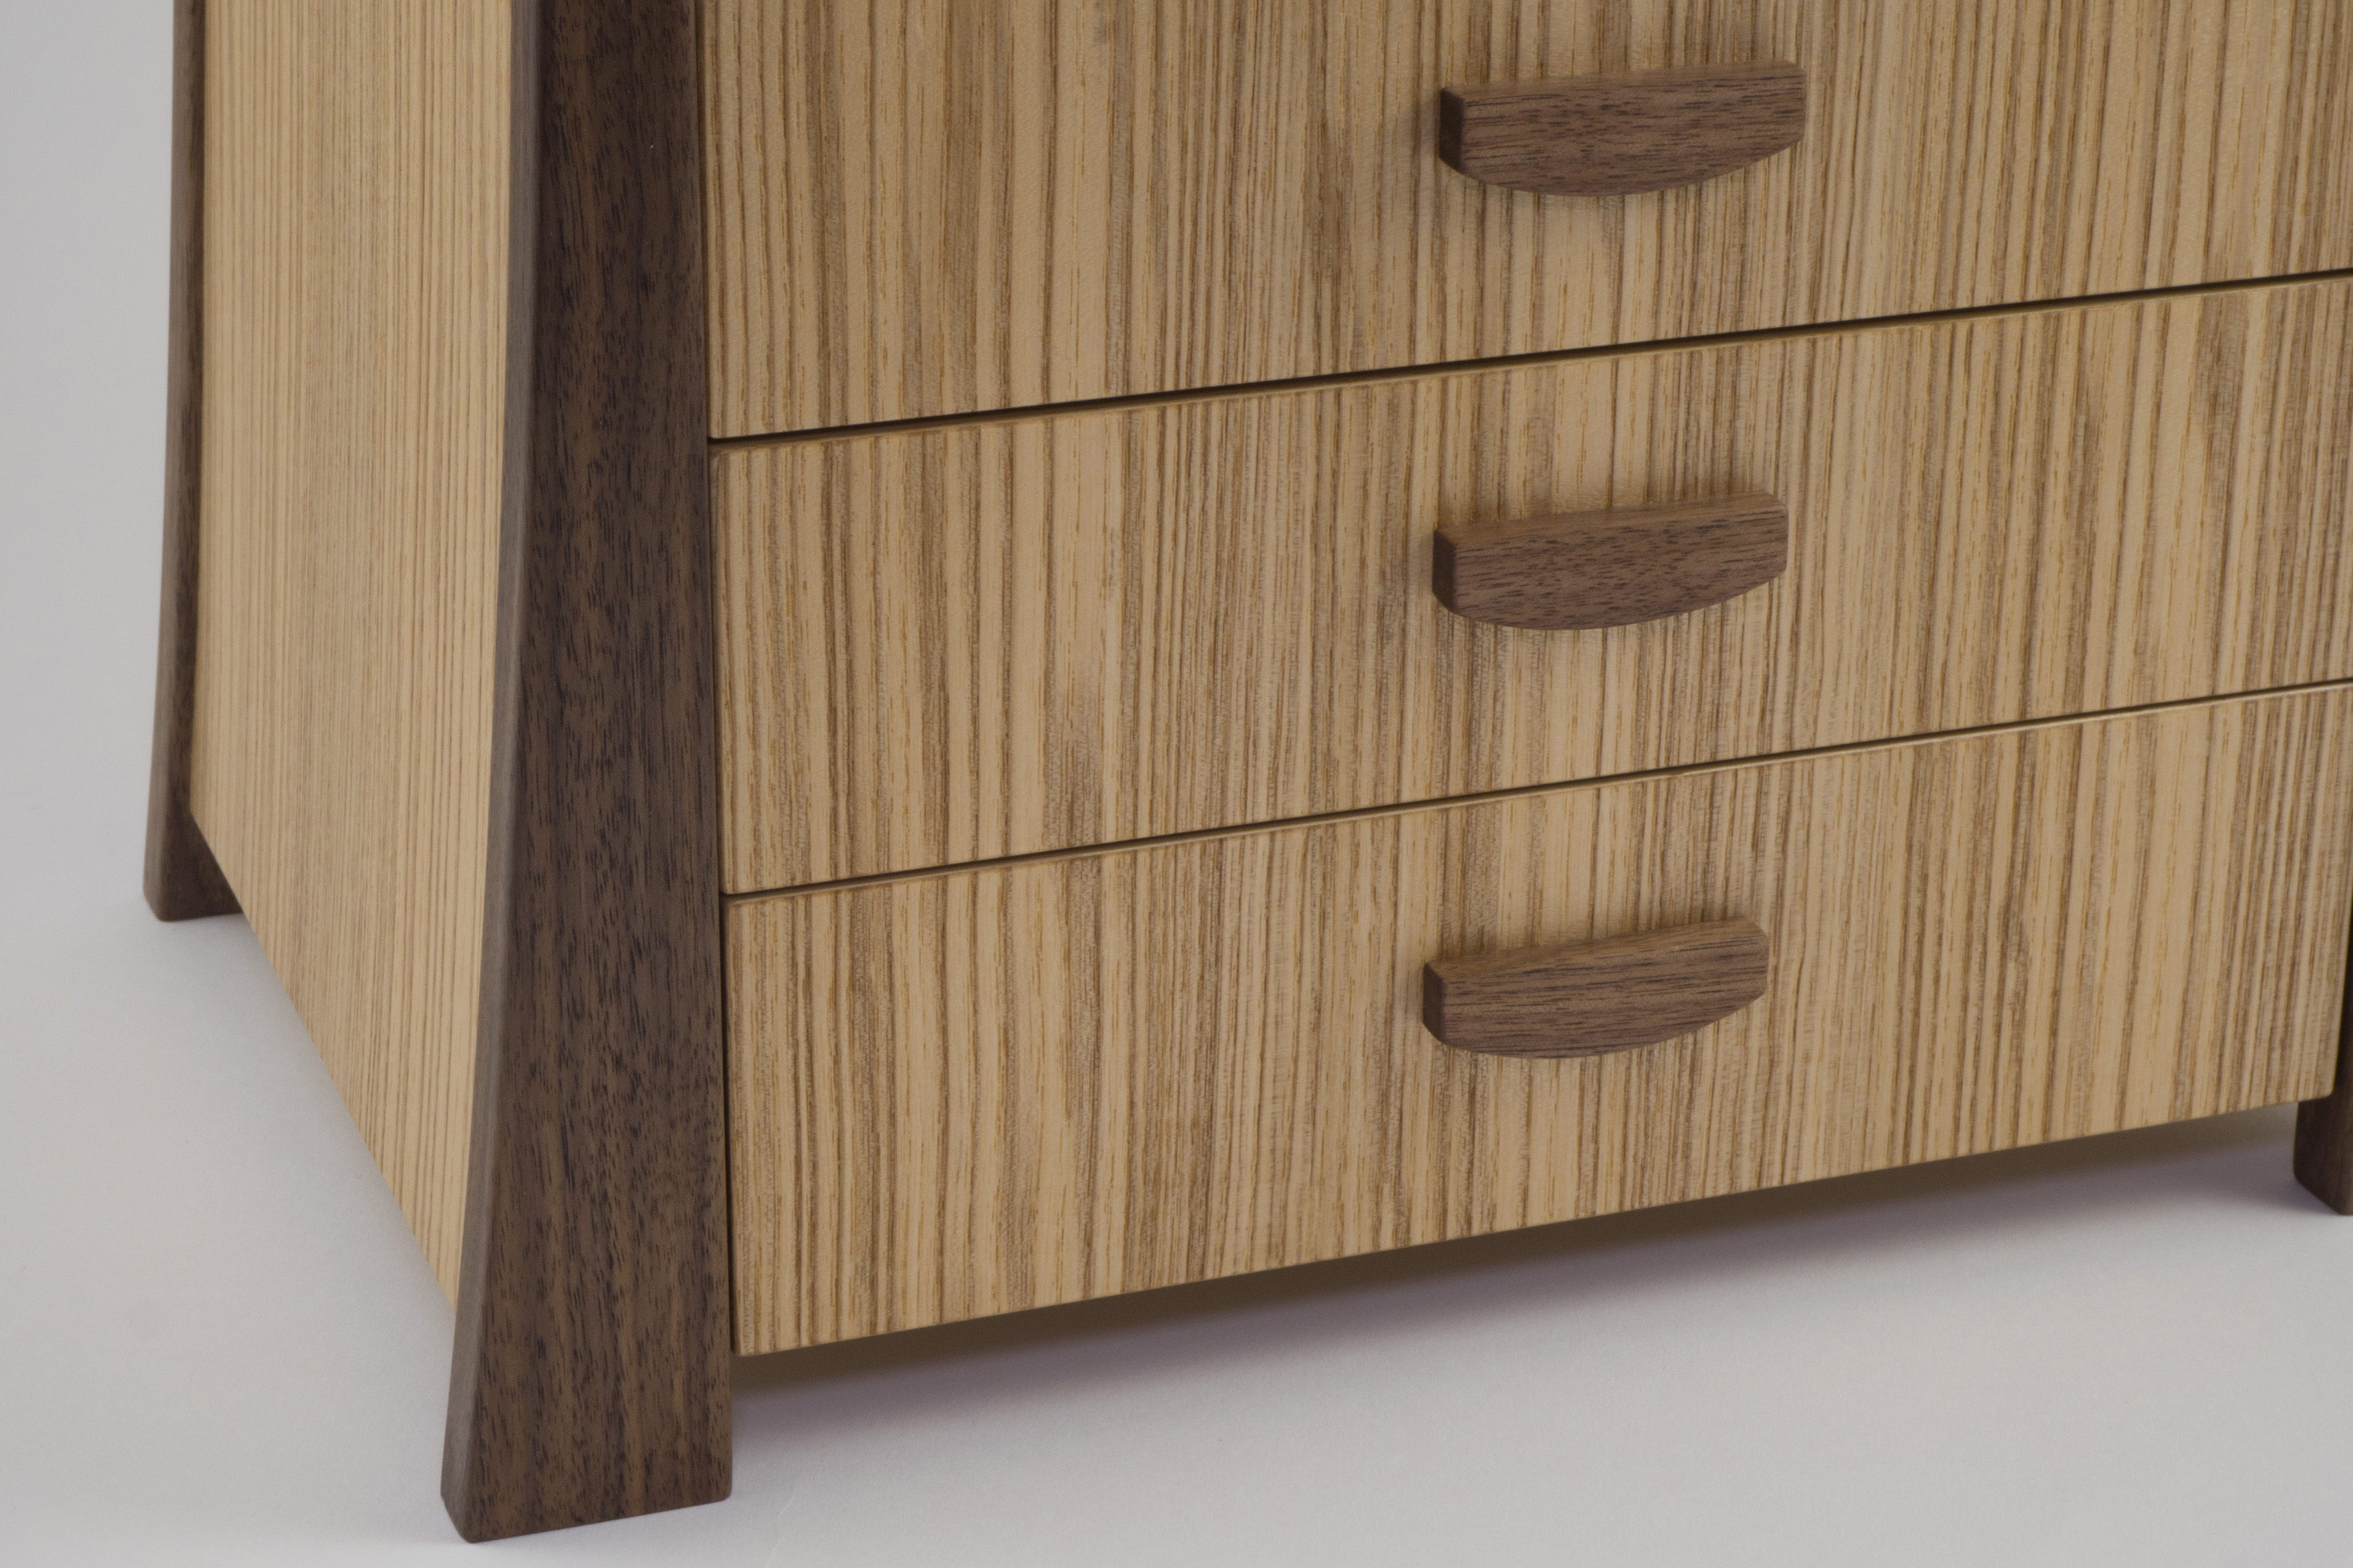 Olive ash jewellery chest